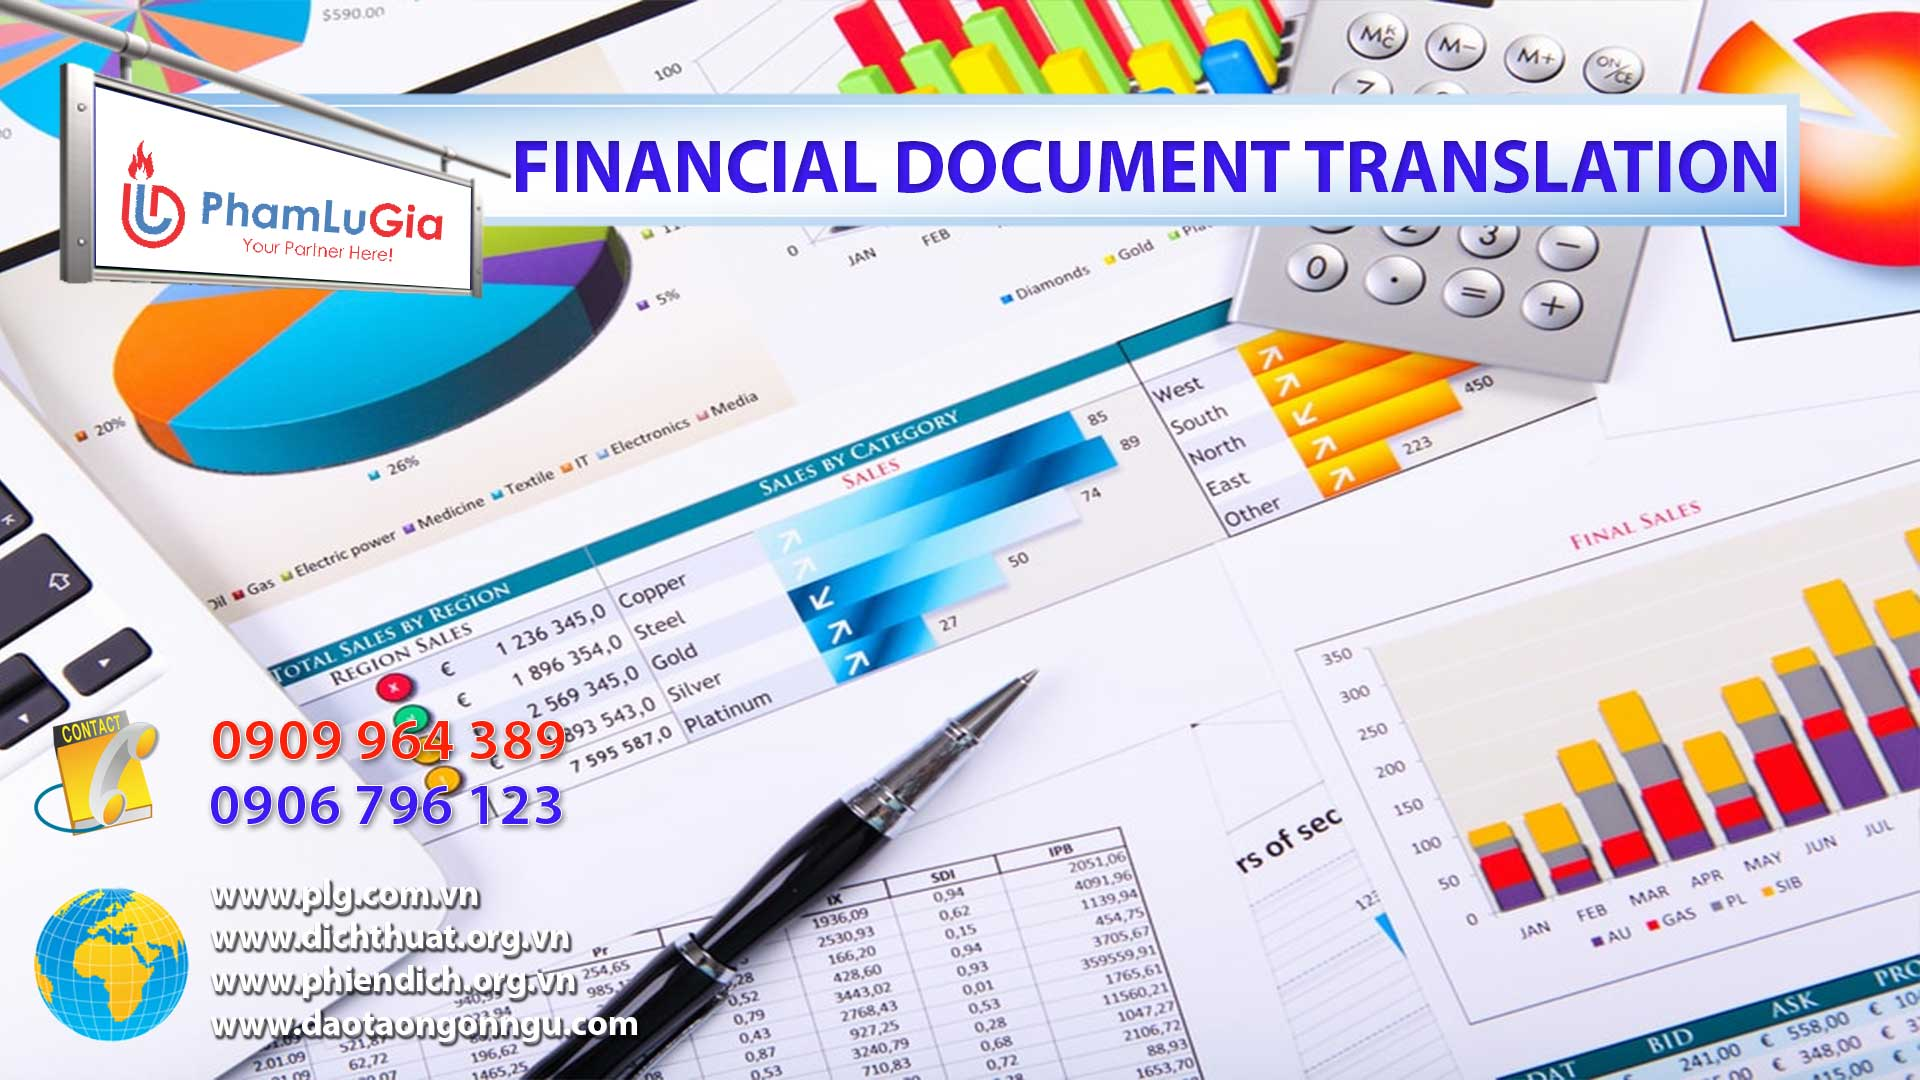 Financial Document Translation